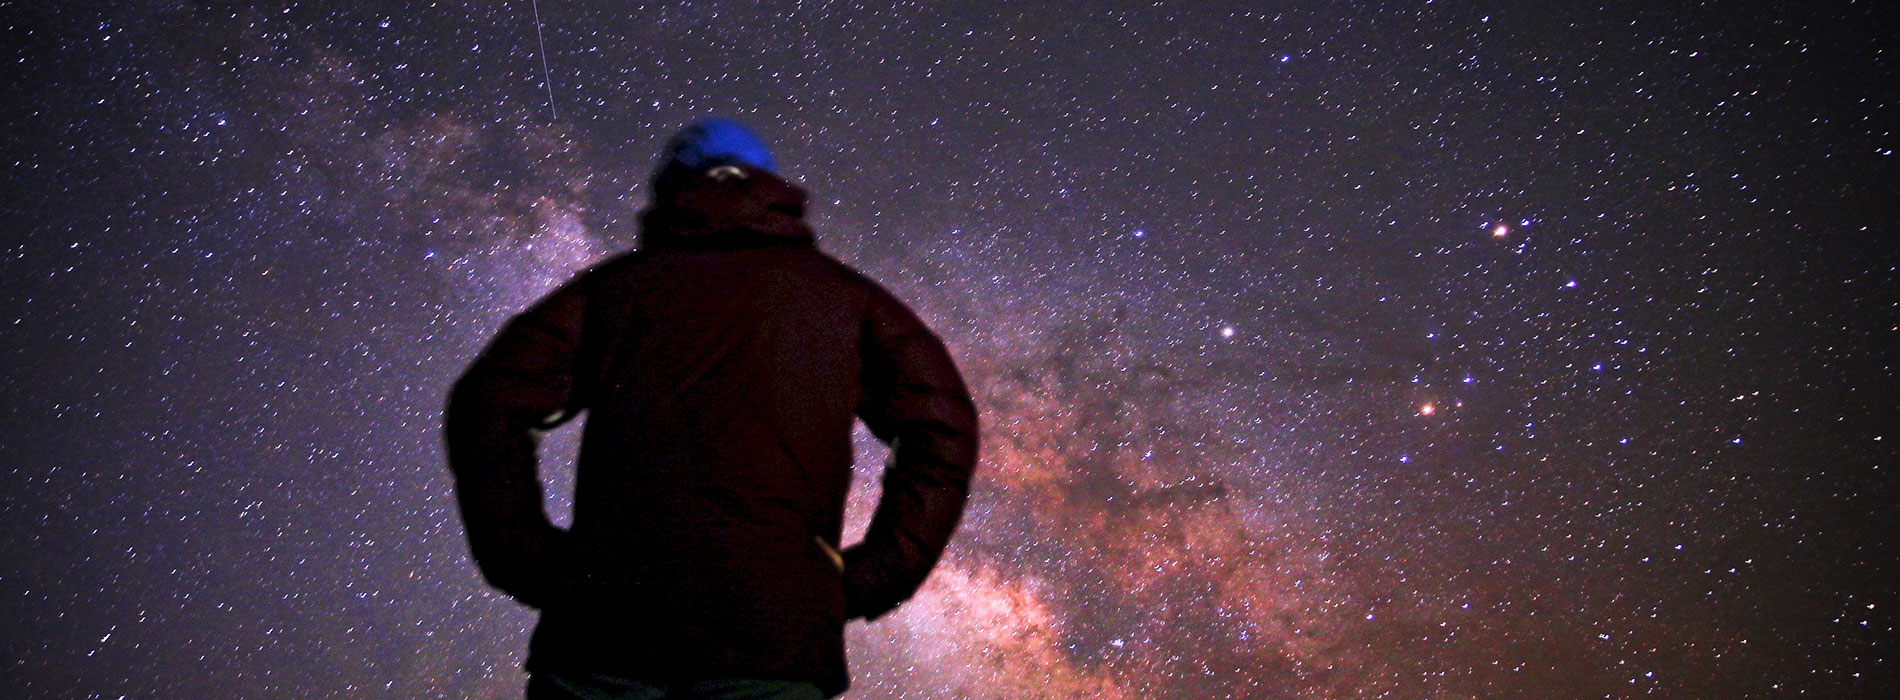 Person looks up at the stars.